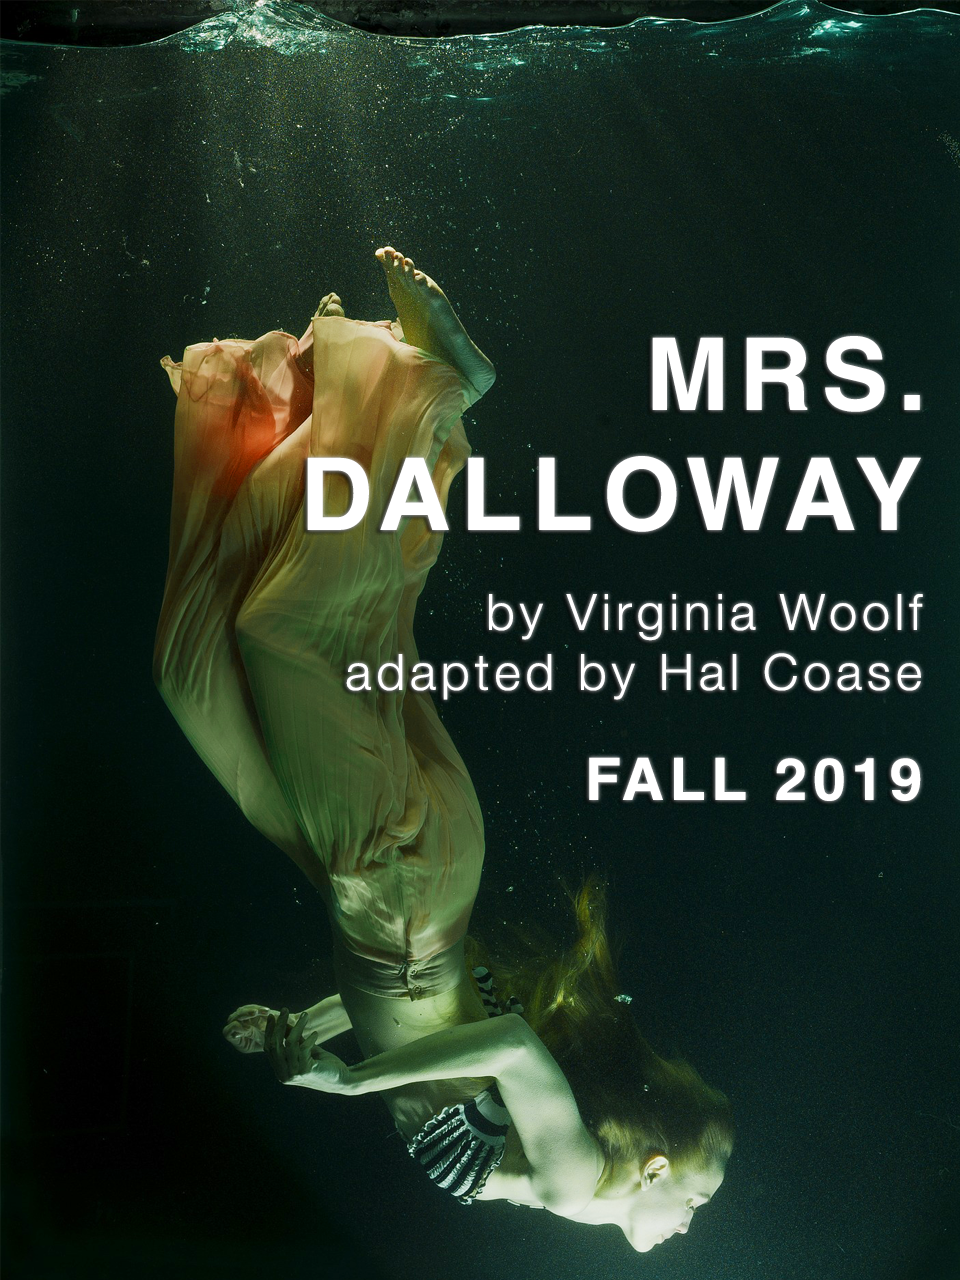 Mrs. Dalloway Virginia Woolf Theatre